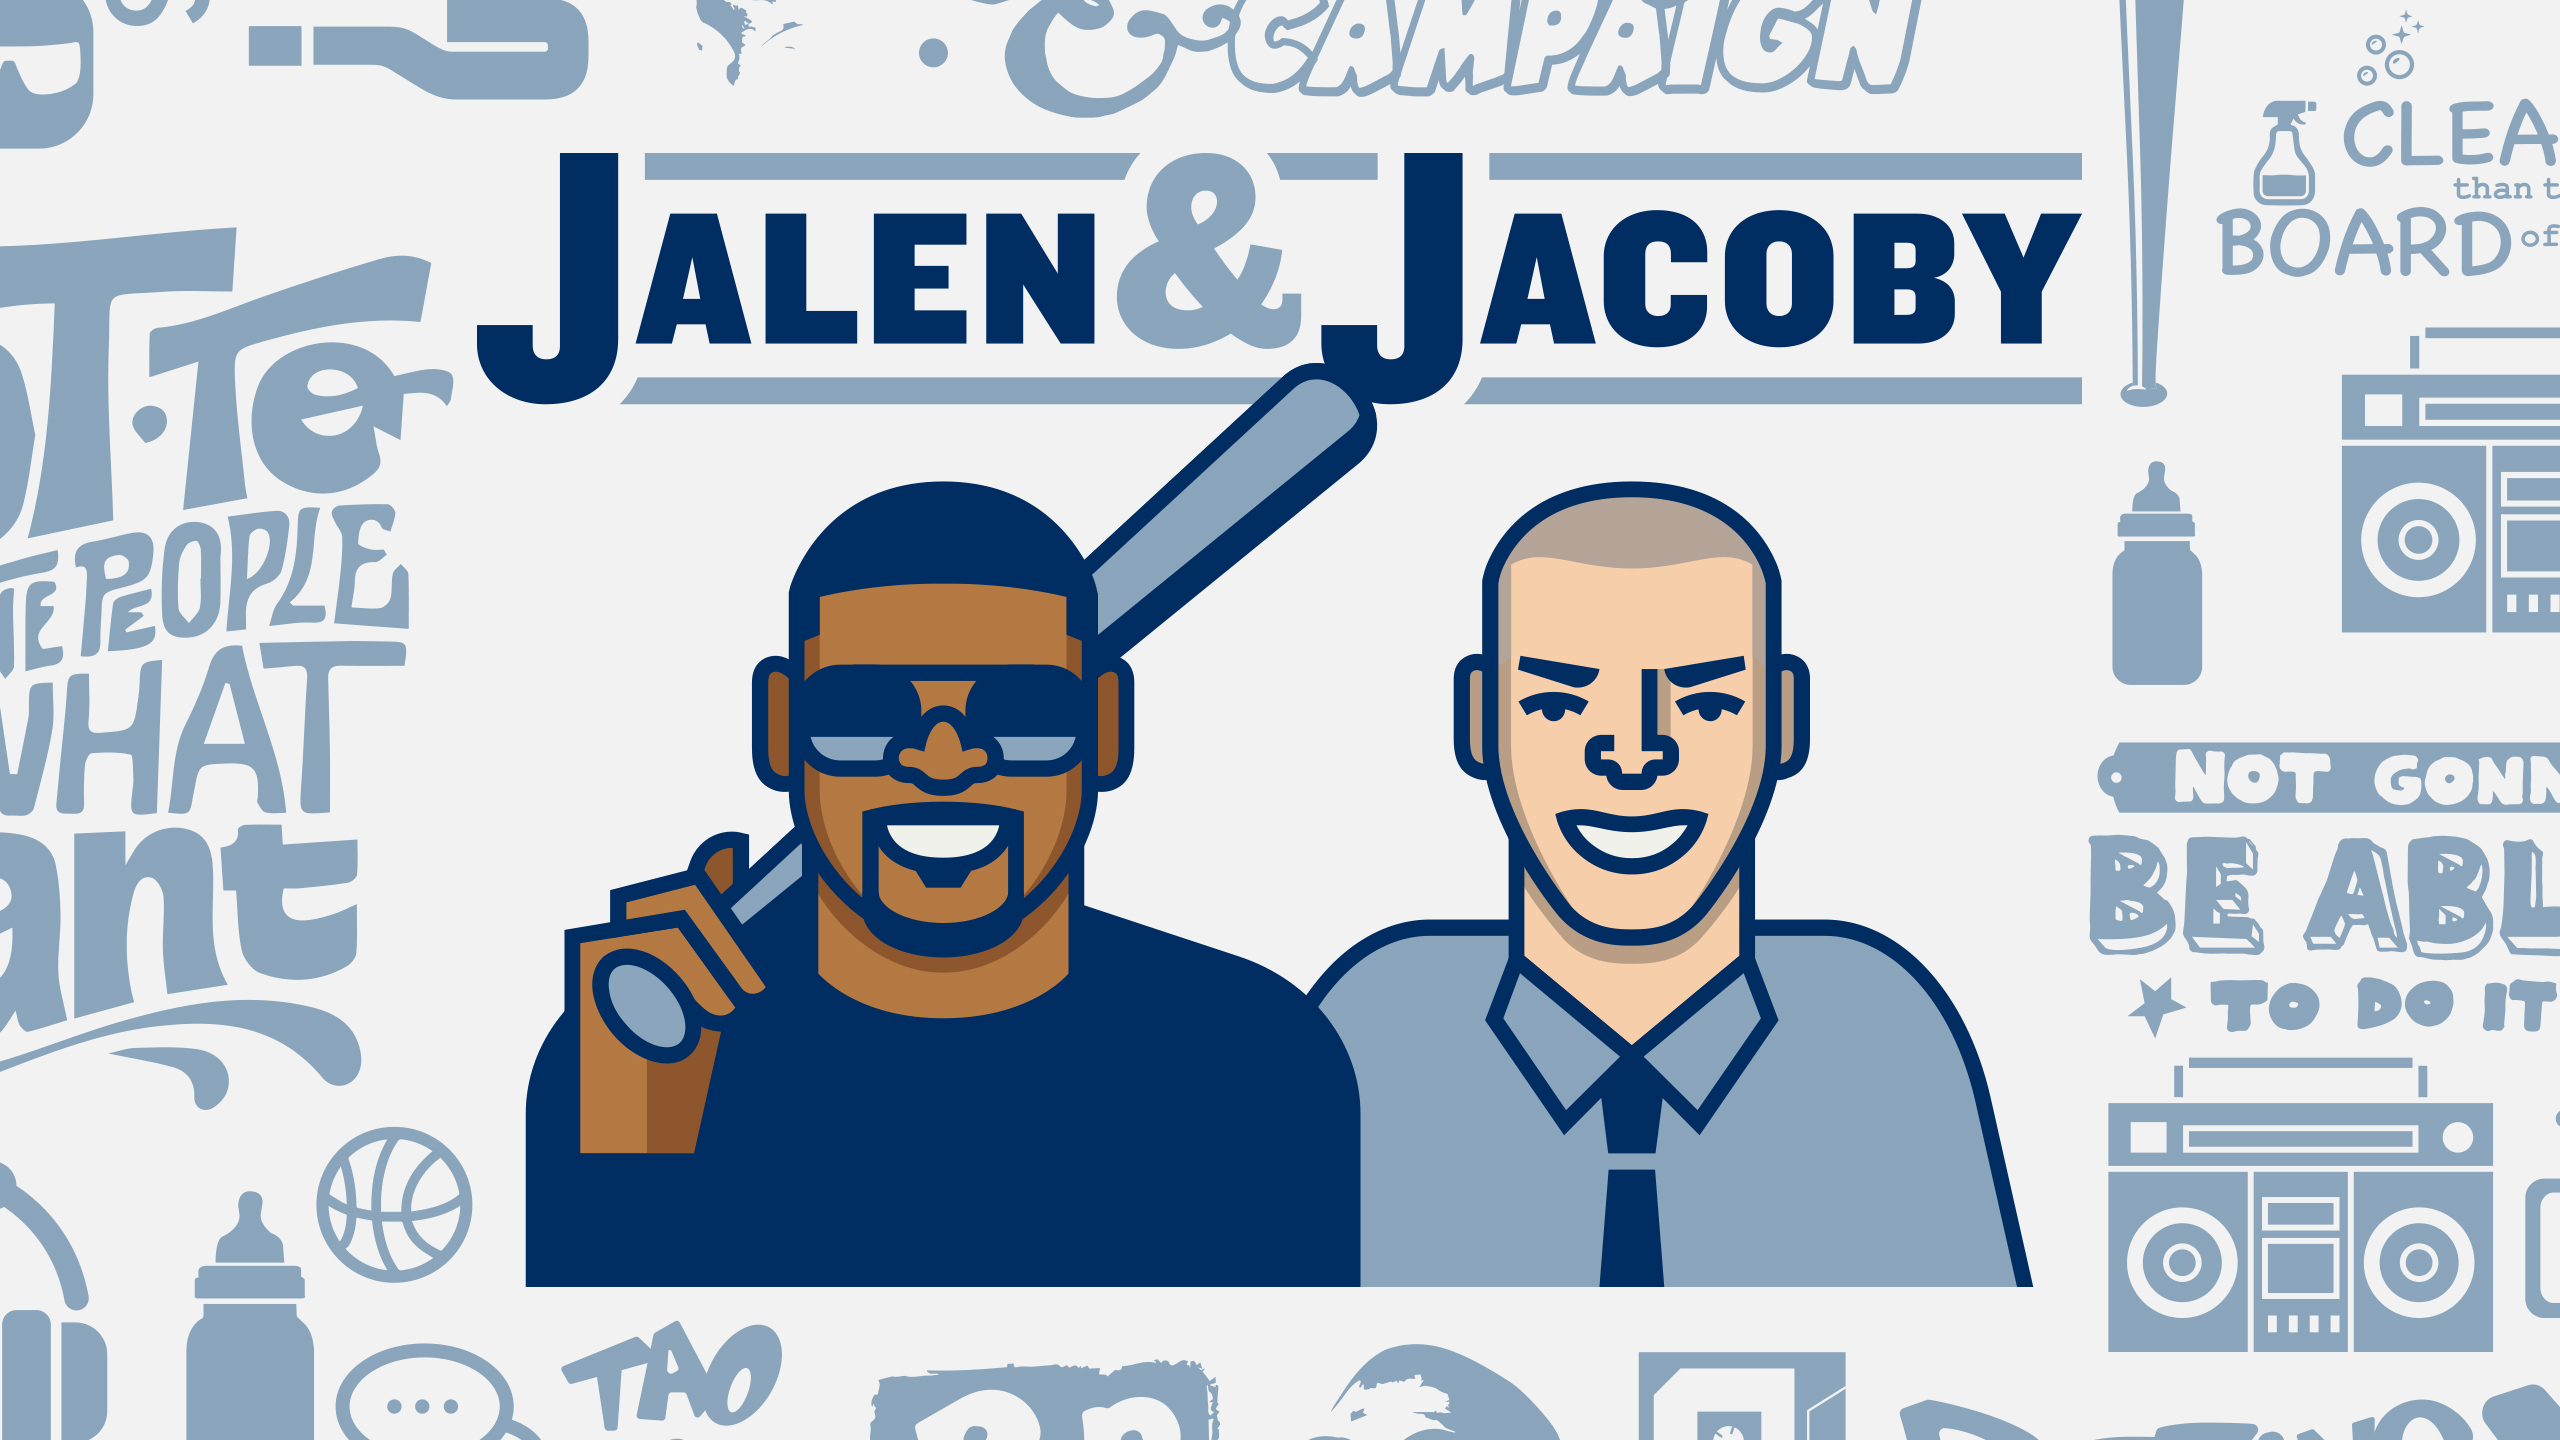 Thu, 4/18 - Jalen & Jacoby